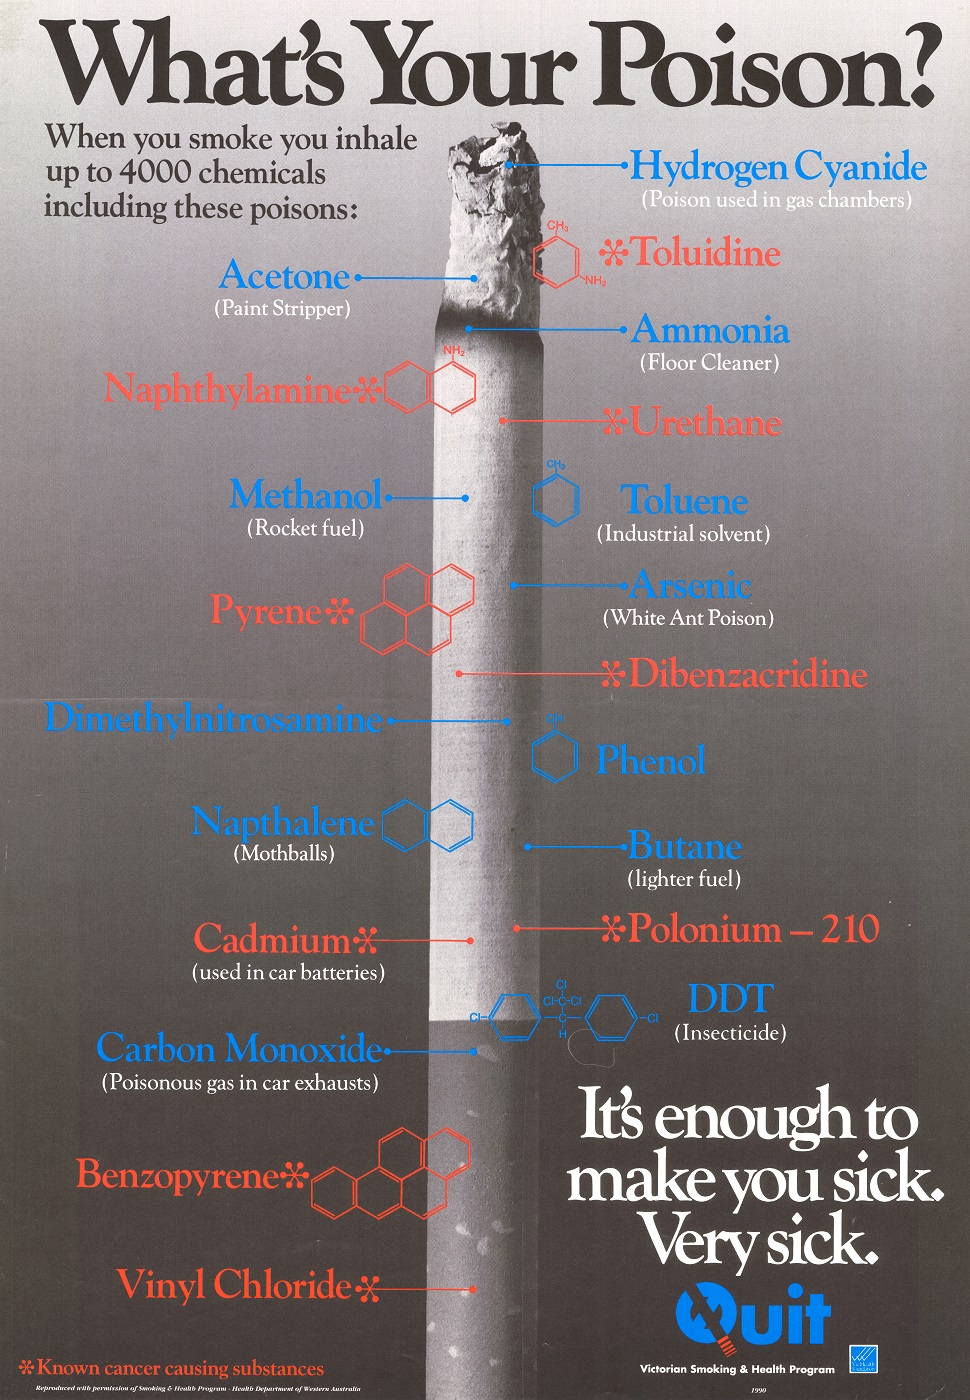 Whats Your Poison Victorian Smoking and Health Program 1990